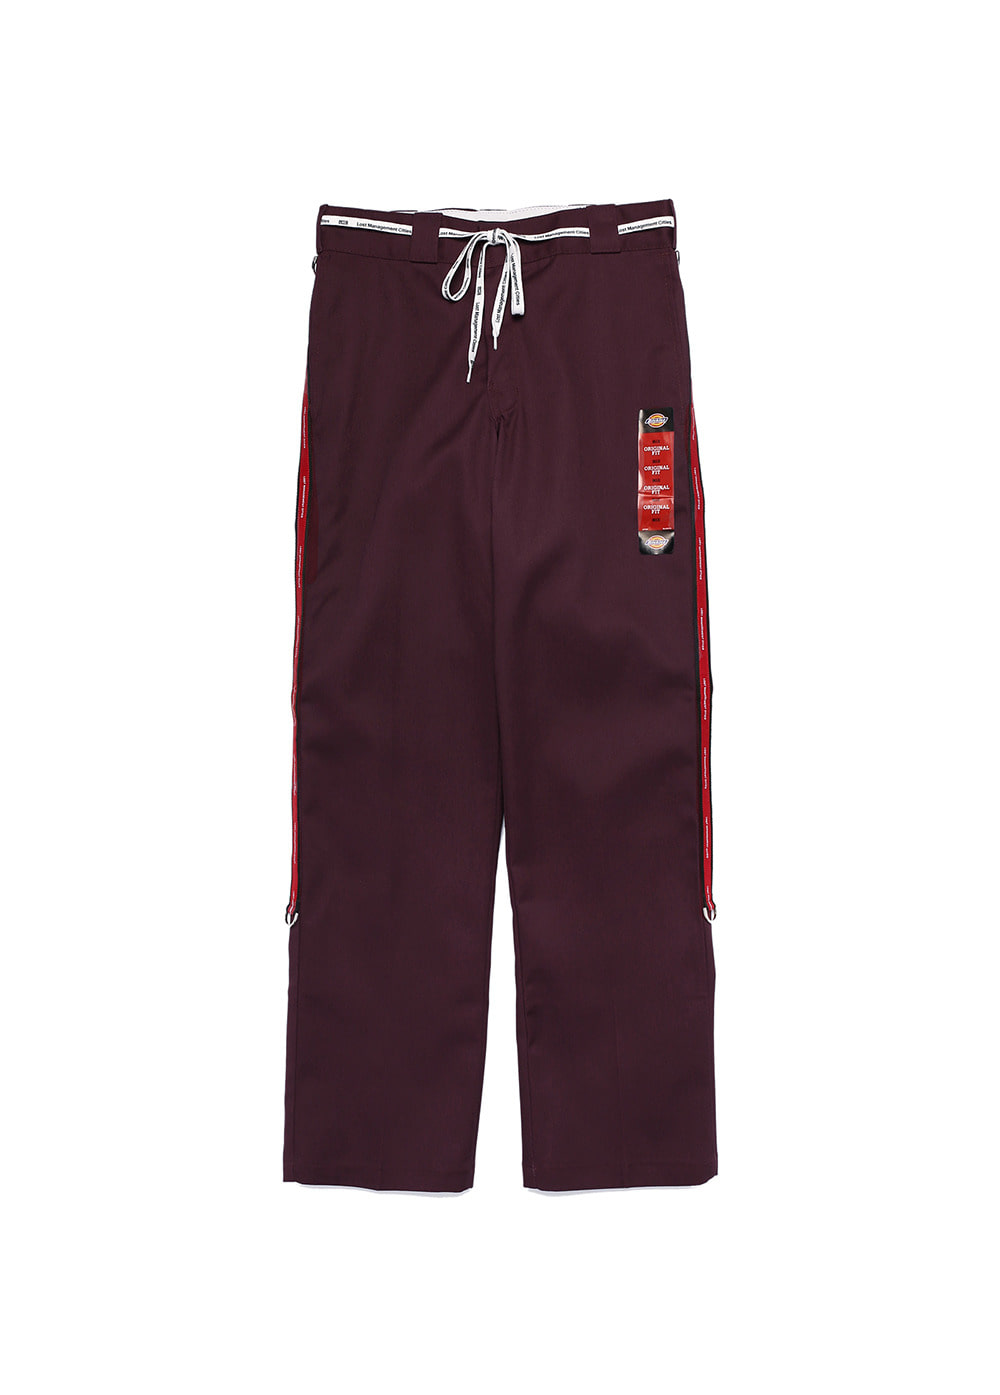 RMK LOGO TAPED DICKIES 874 maroon